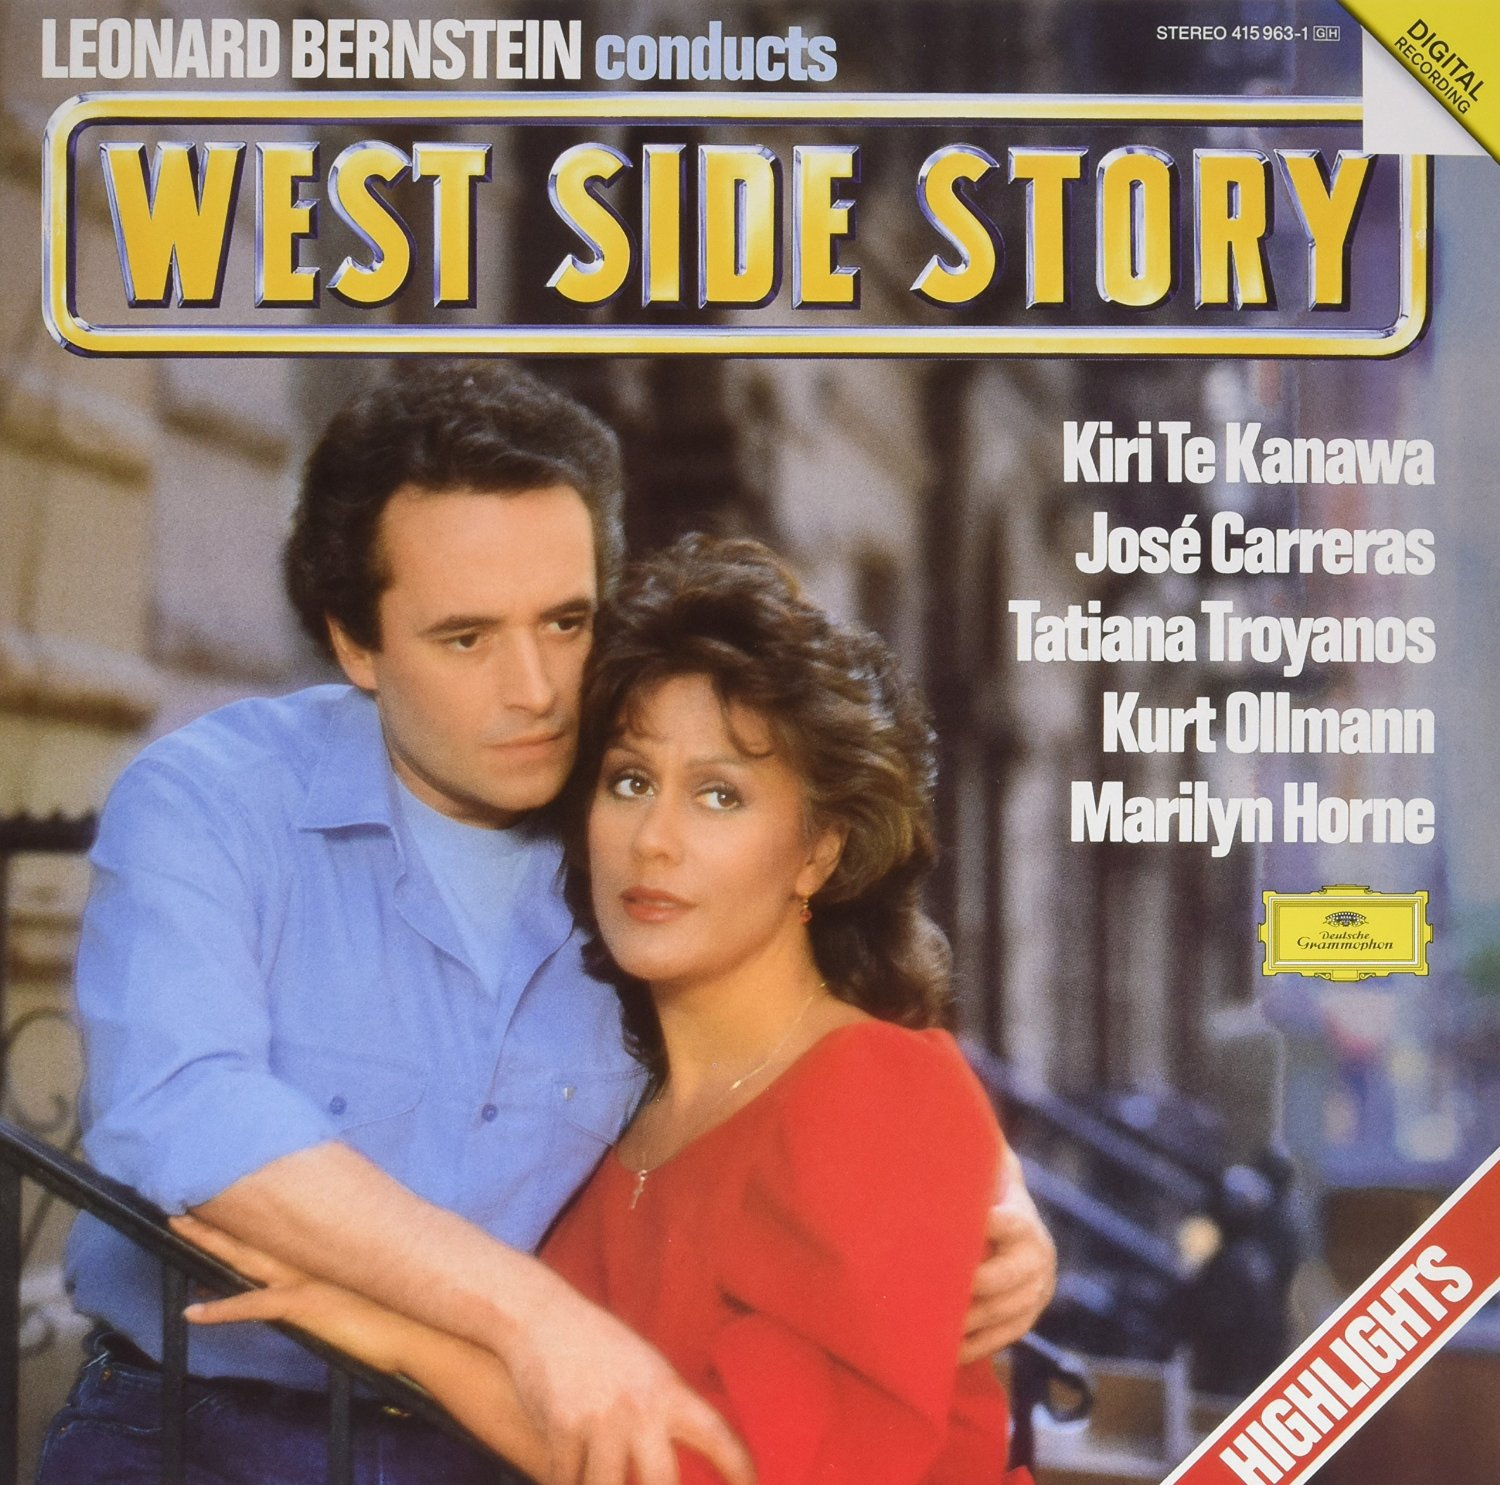 Te Kanawa Carreras Bernstein Leonard Bernstein Conducts West Side Story Lp Music